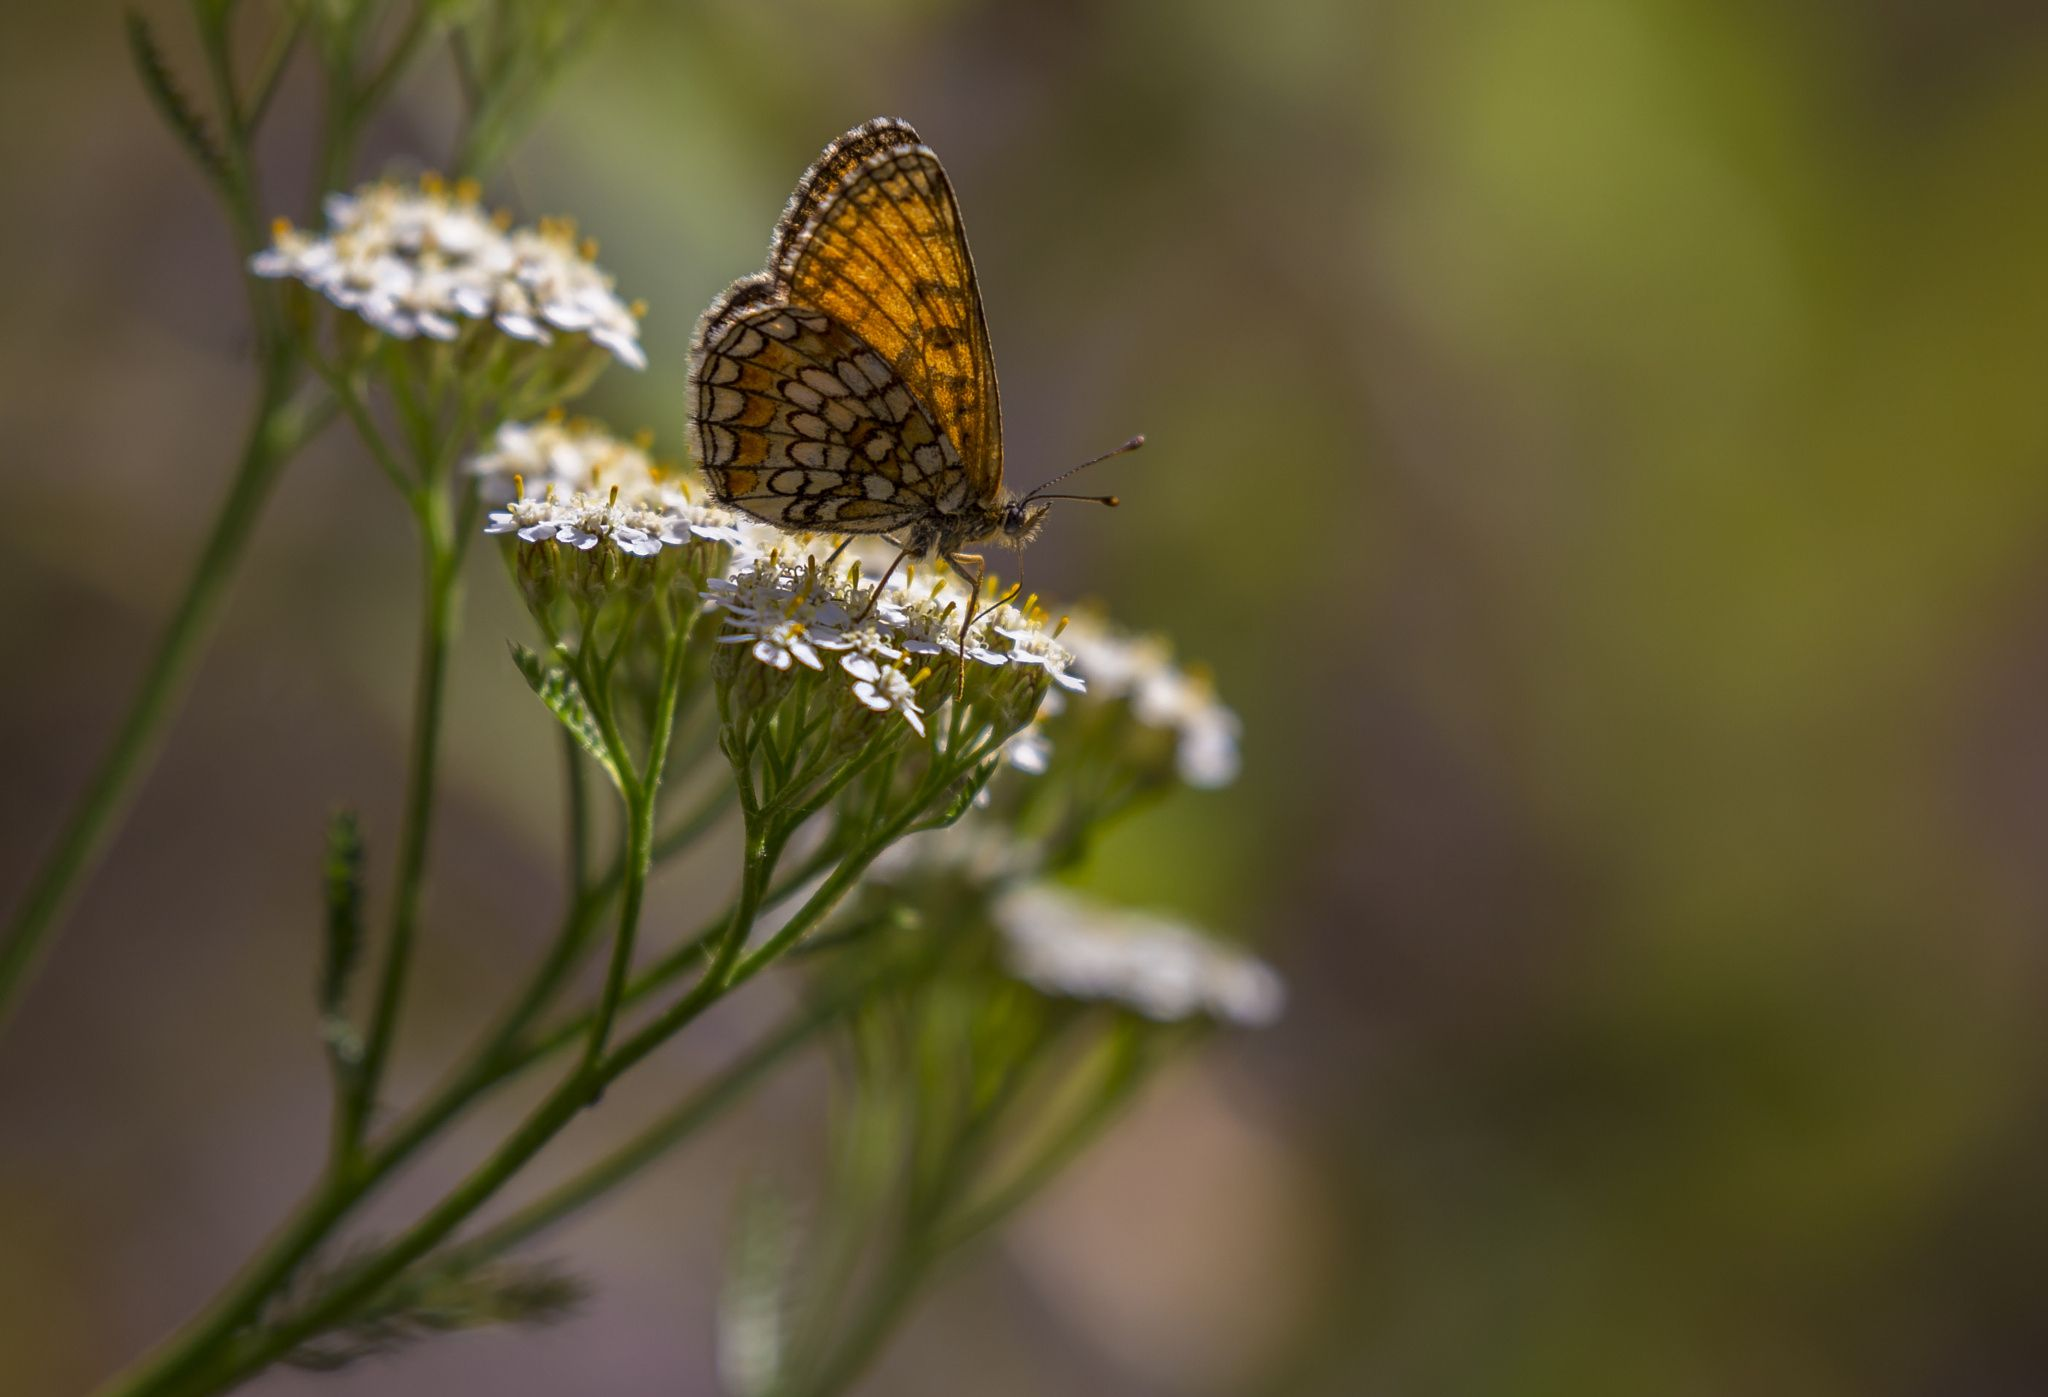 Heath fritillary by Arto Griinari on 500px